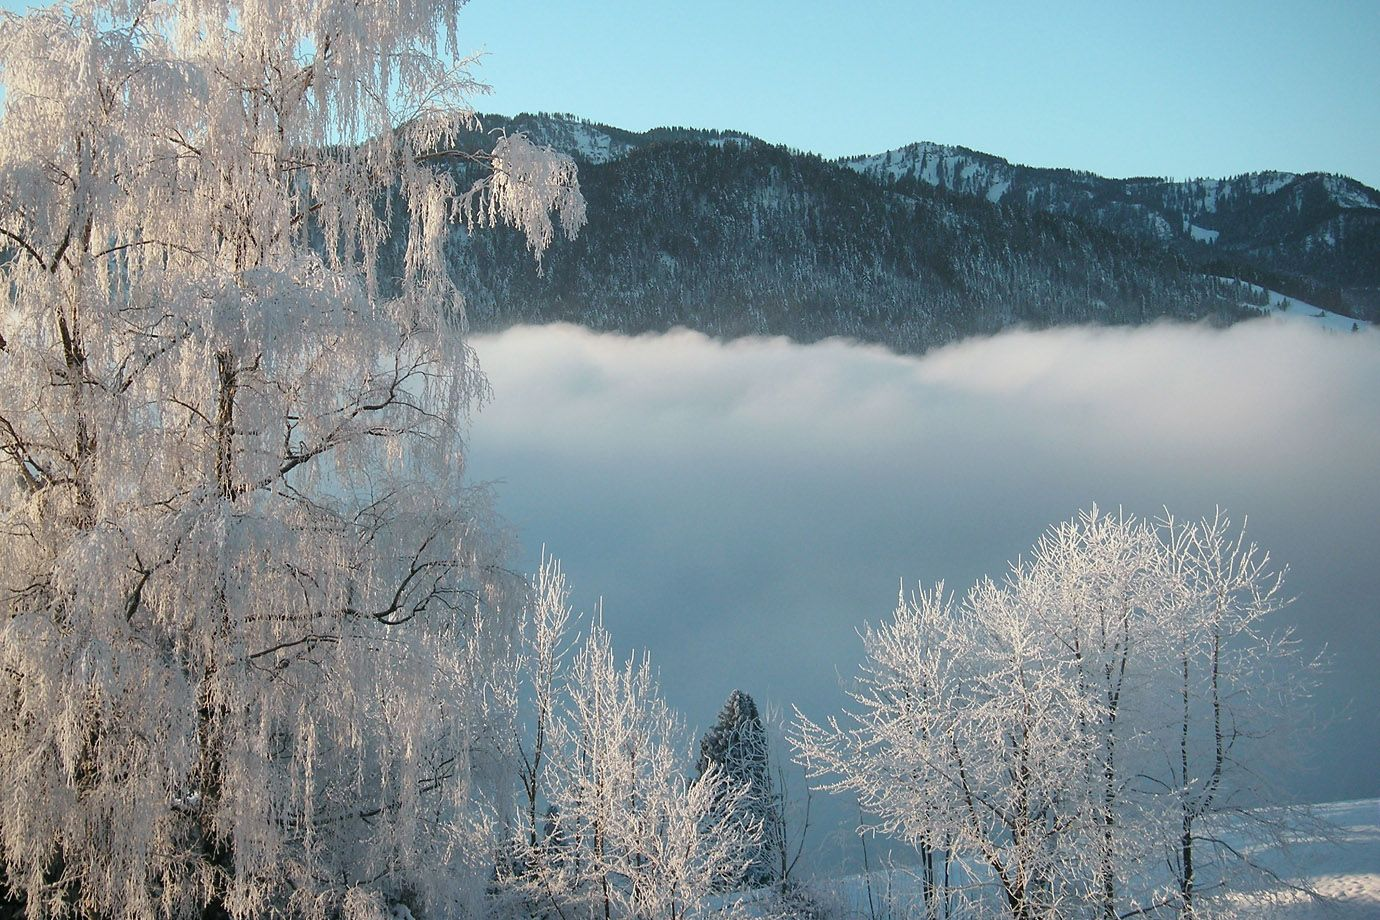 The winter morning transforms the mountain landscape